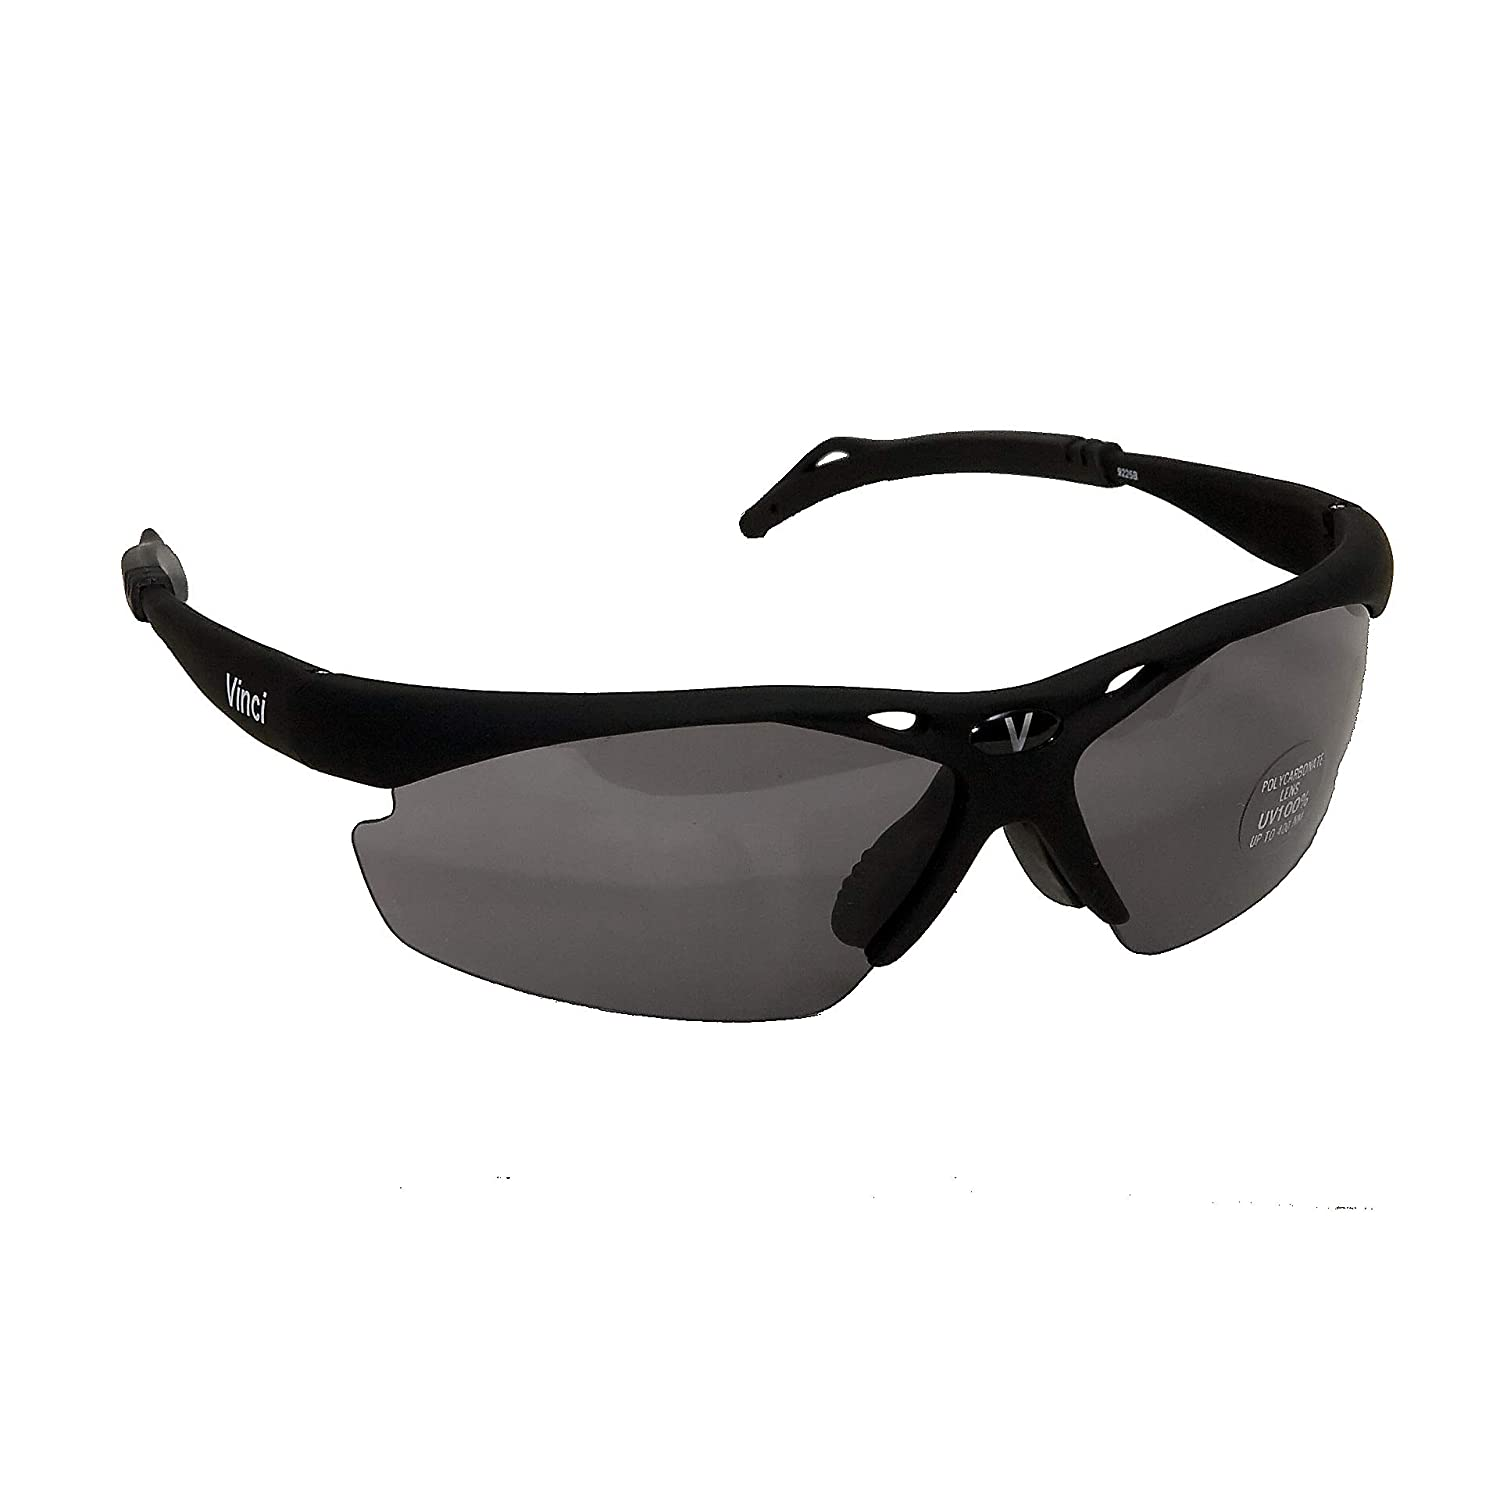 Vinci Black Multilens Sport Sunglasses for baseball, cycling, running and many more